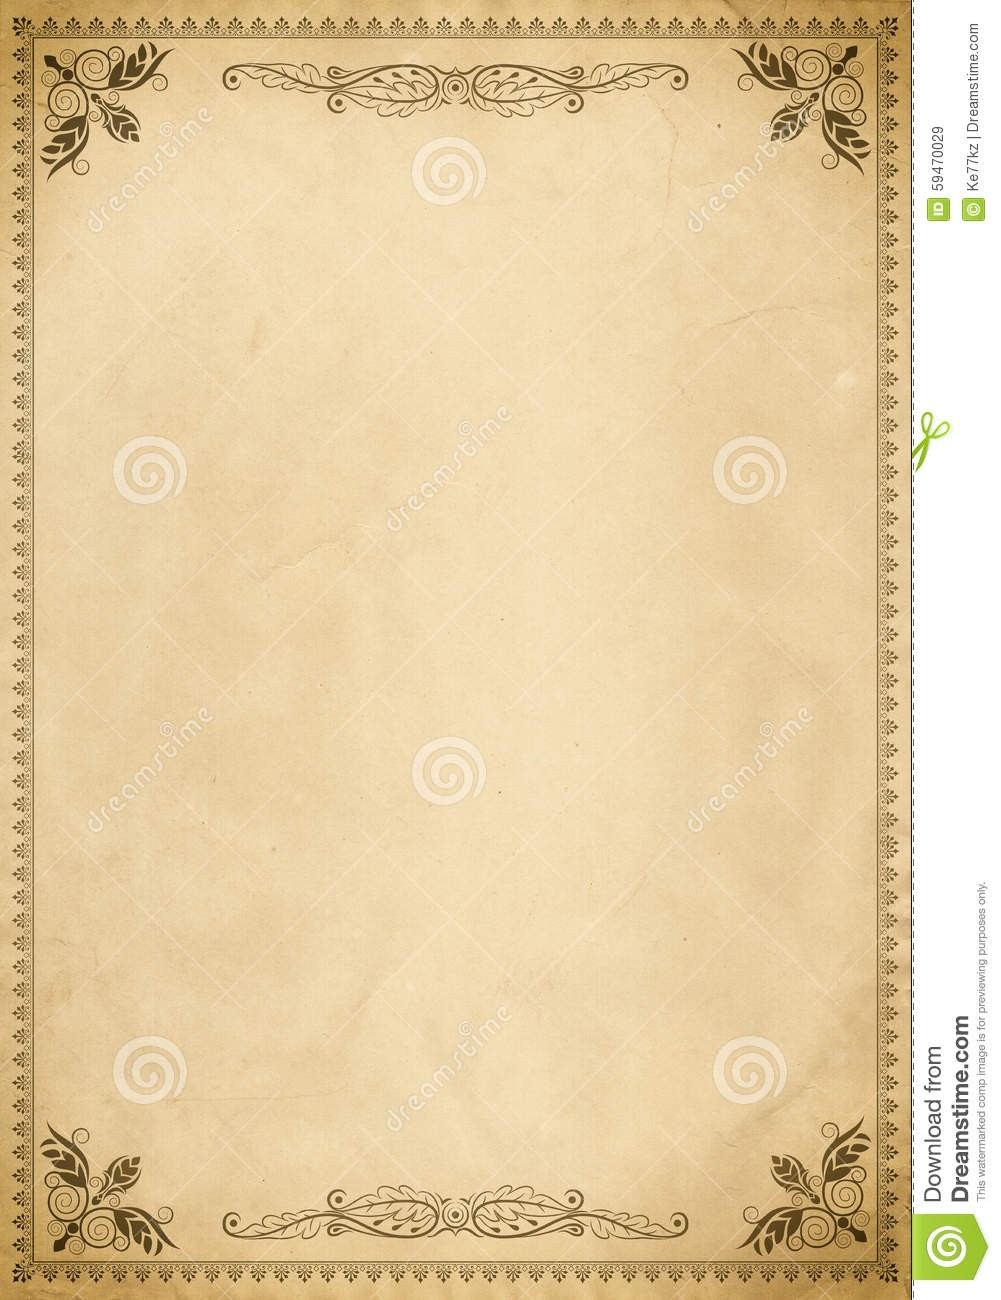 letter template old fashioned  Old Paper Background With Vintage Border. Stock ..